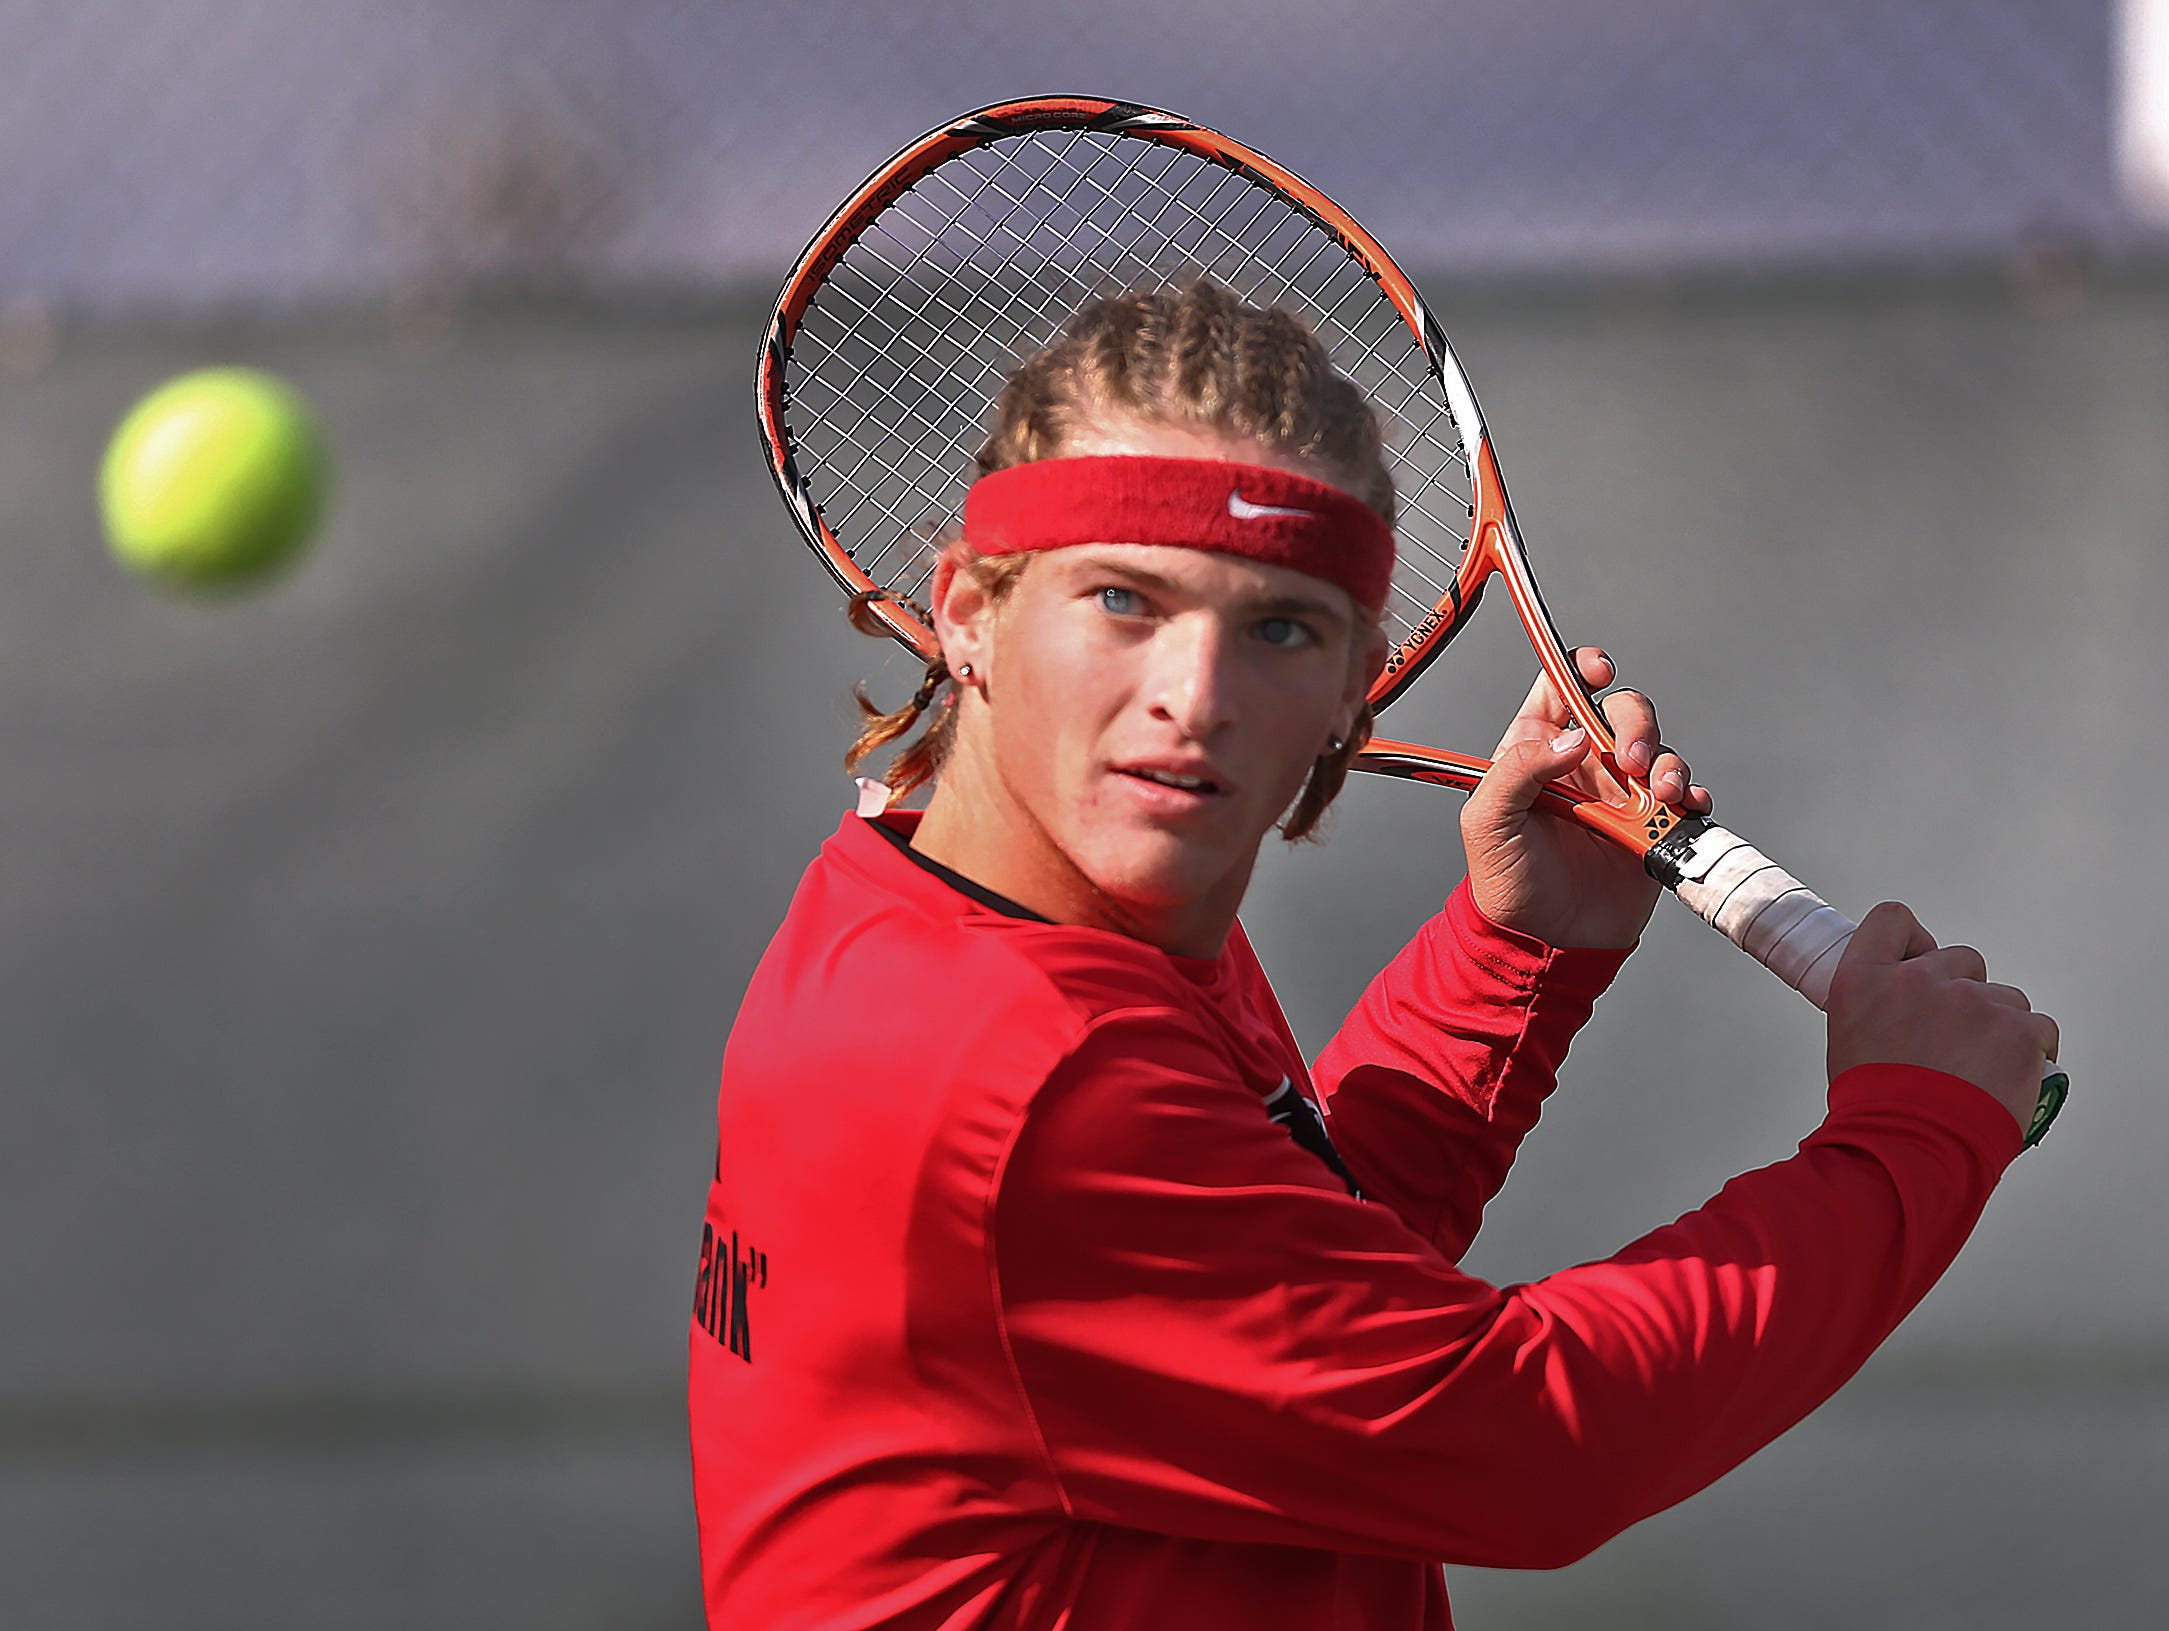 North Central's No. 1 singles player Steven Christie will compete in the individual state meet at Park Tudor.